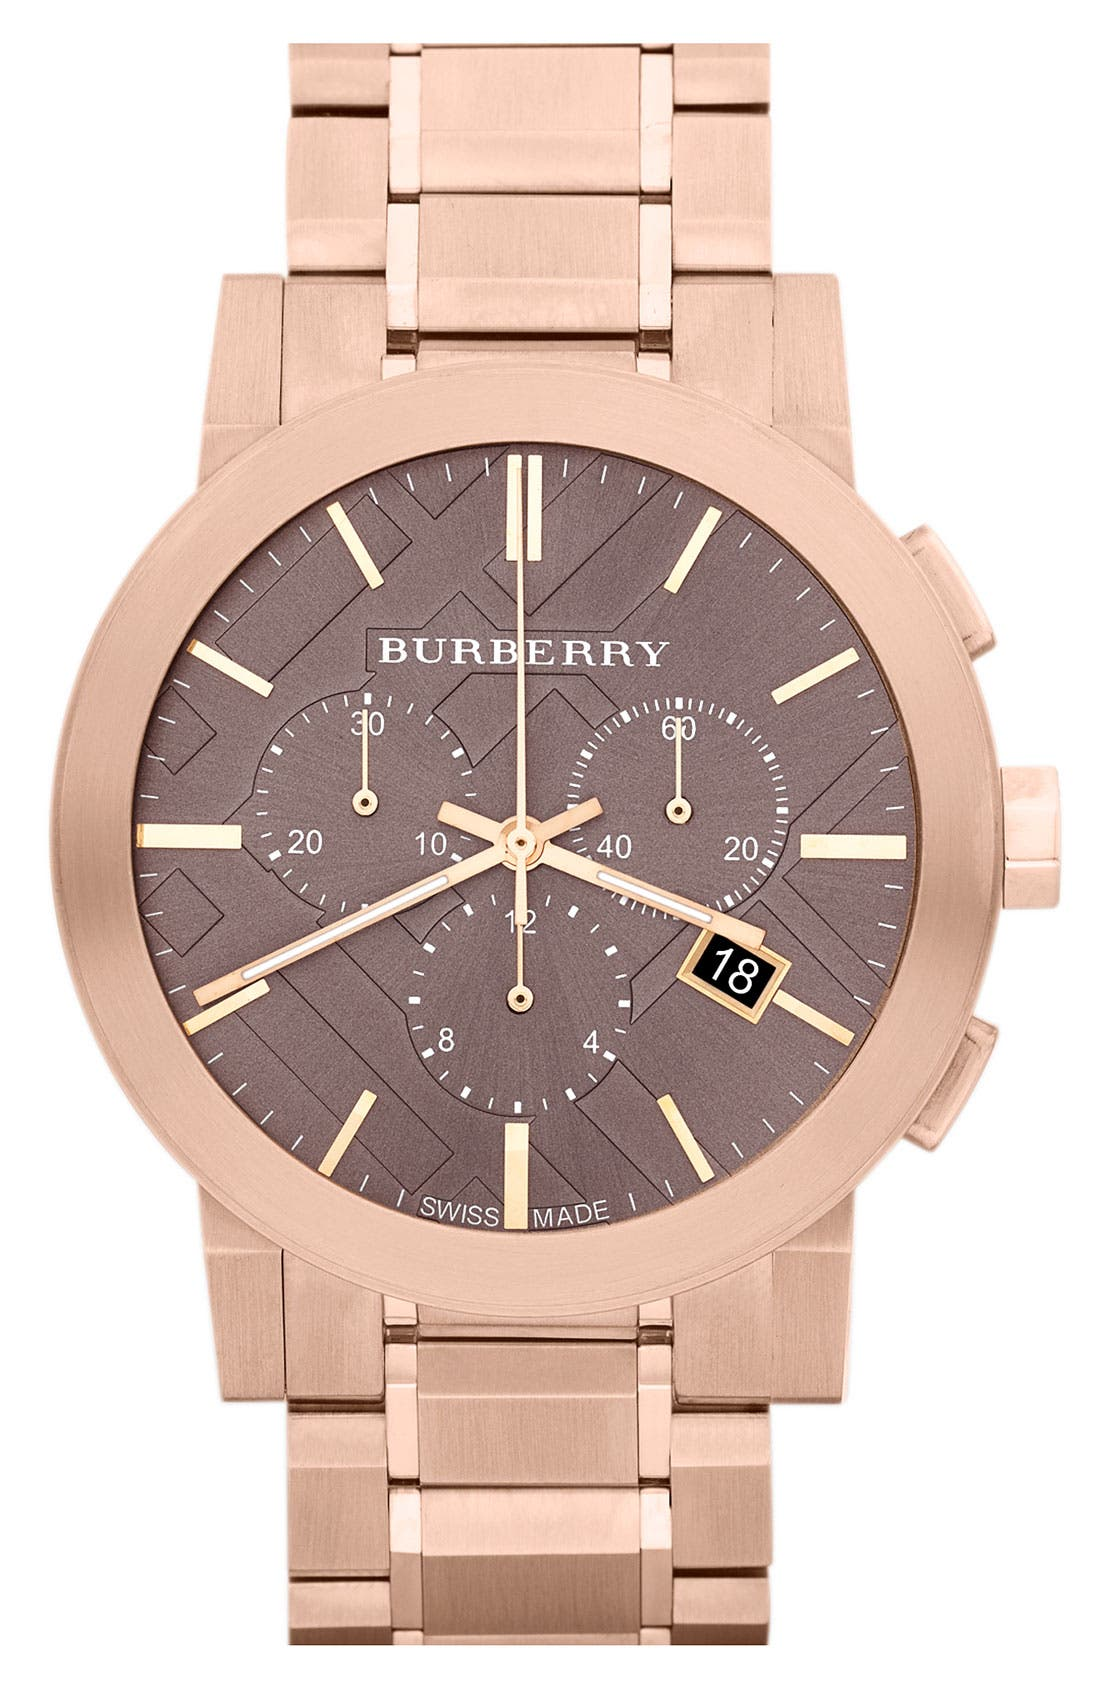 Alternate Image 1 Selected - Burberry Large Chronograph Bracelet Watch, 42mm (Regular Retail Price: $895.00)